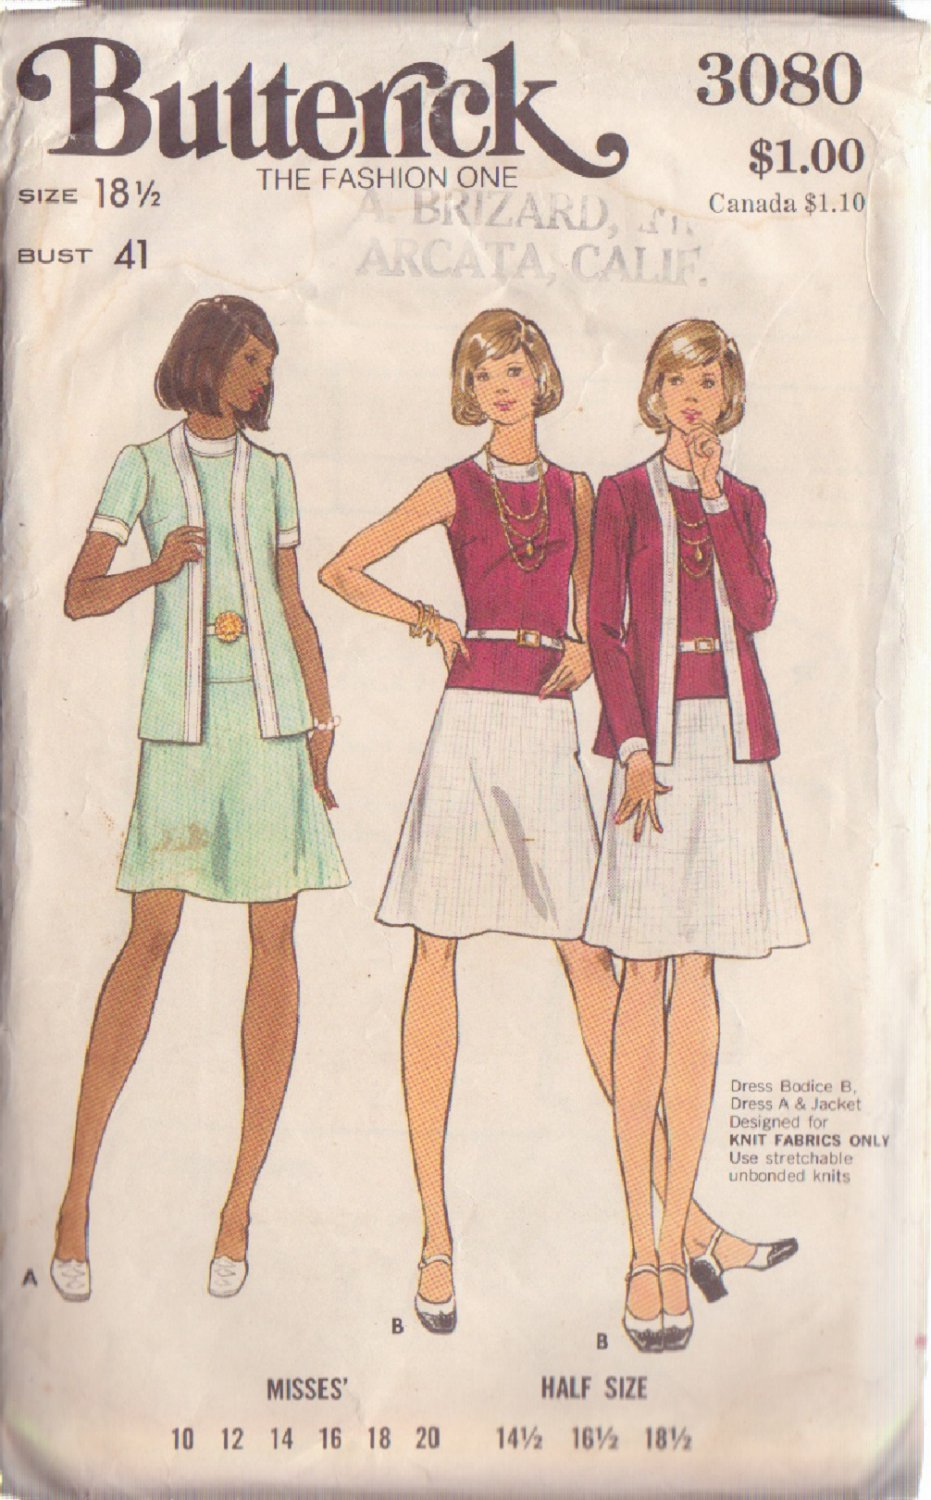 BUTTERICK 3080 PATTERN SIZE 18 1/2 MISSES' DRESS AND JACKET